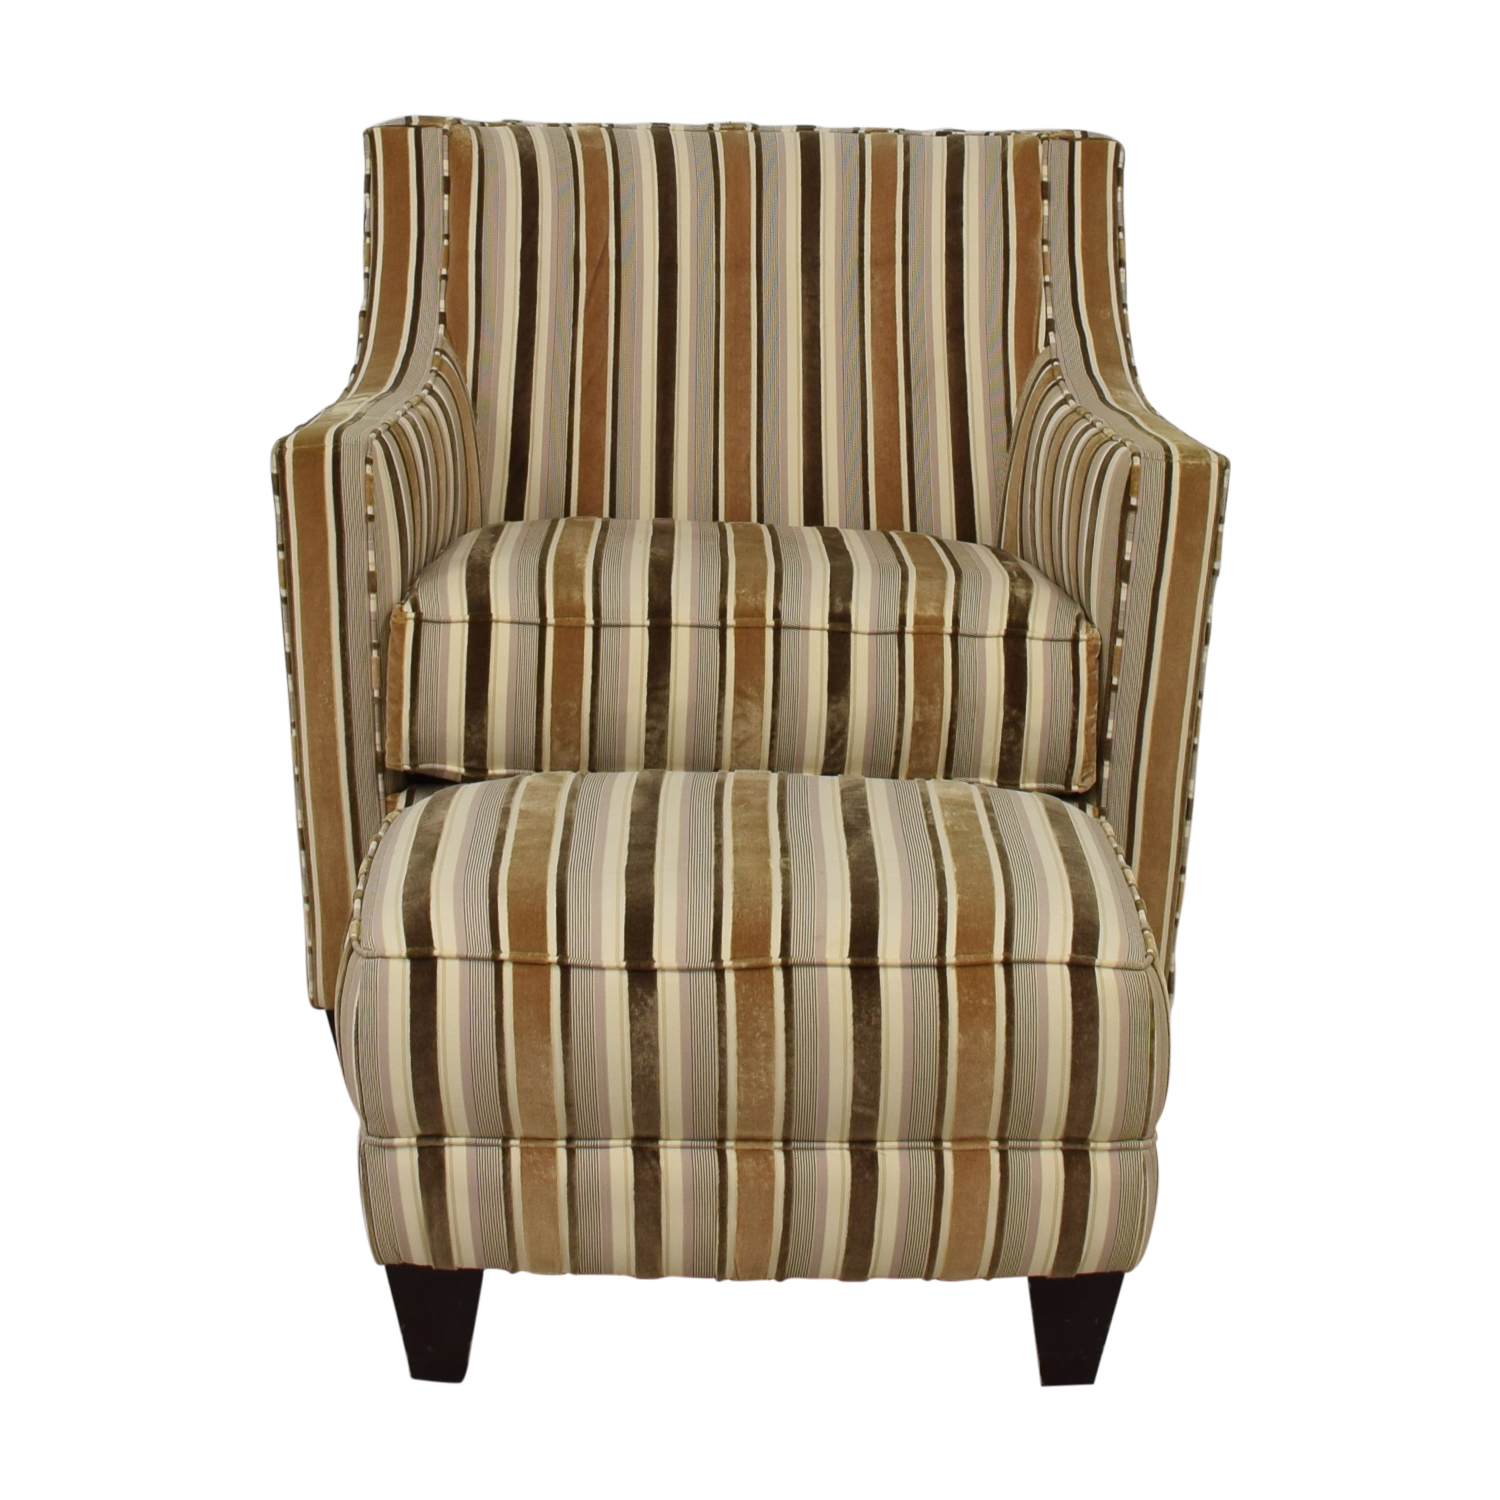 Robert Allen Robert Allen Beige and Brown Striped Accent Chair and Ottoman